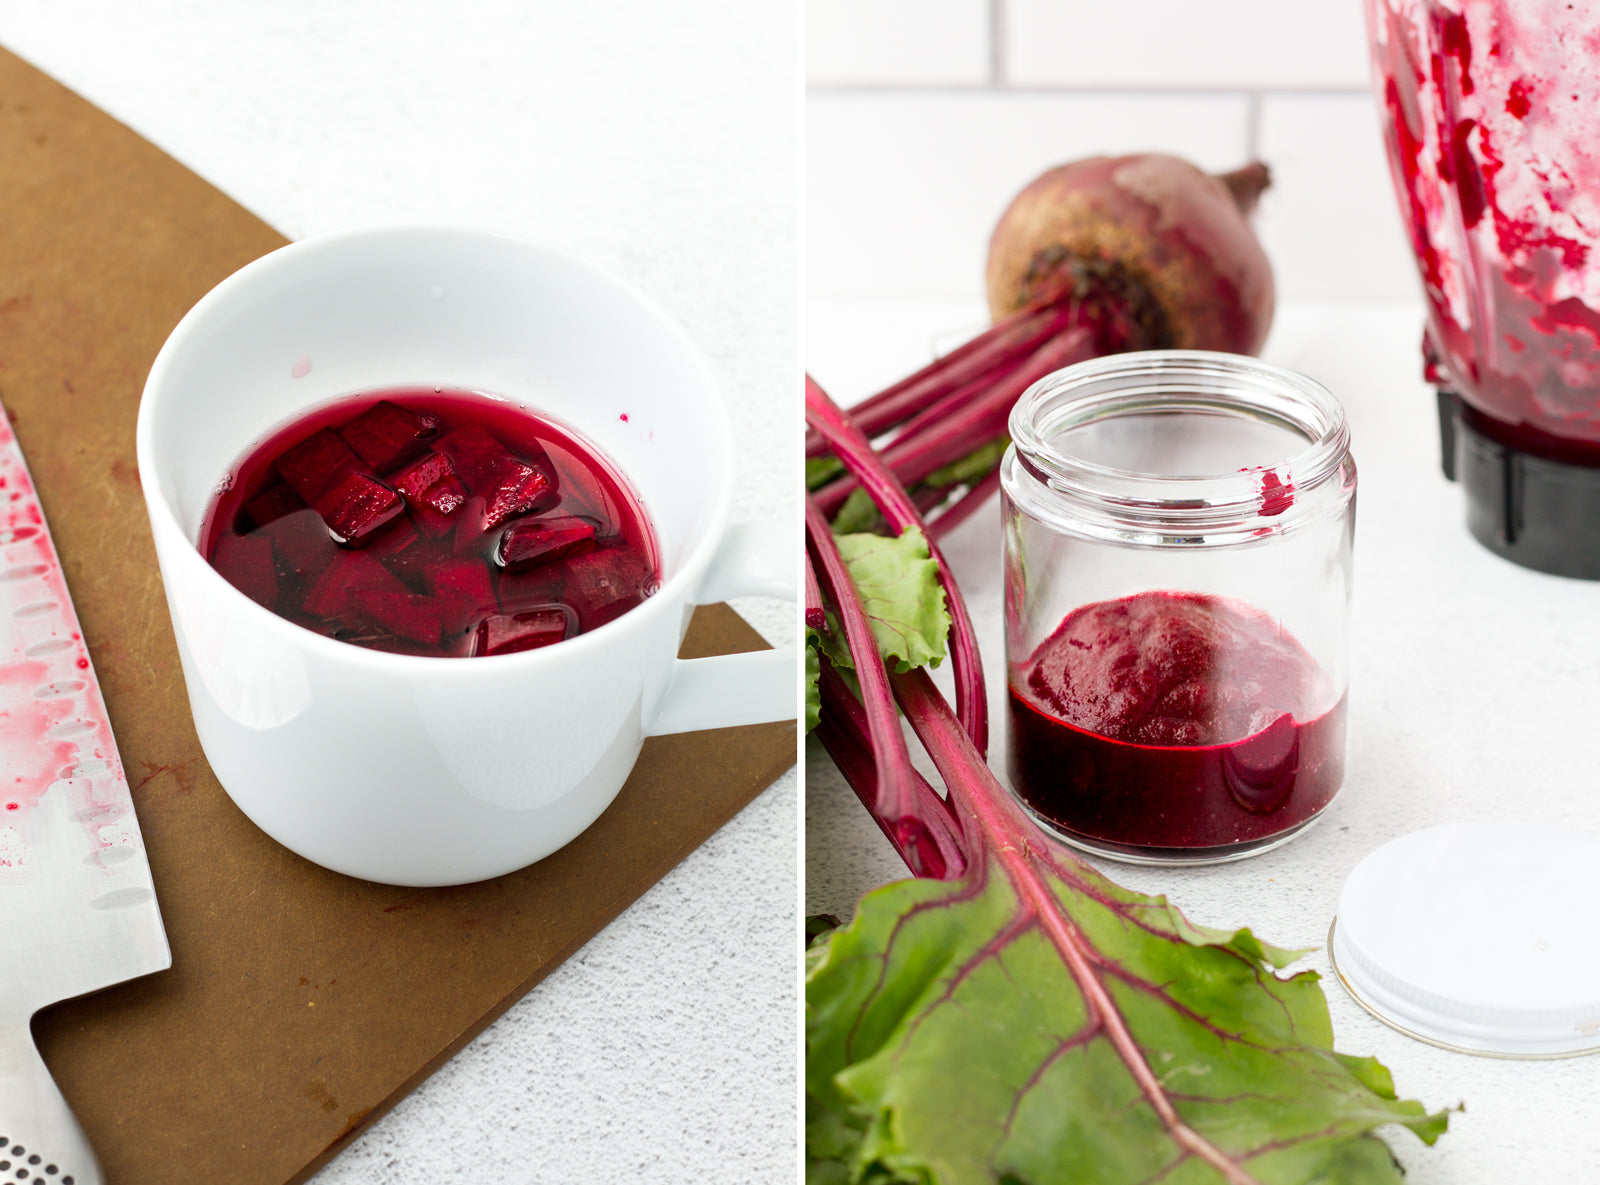 Beet Puree for Natural Red Food Coloring